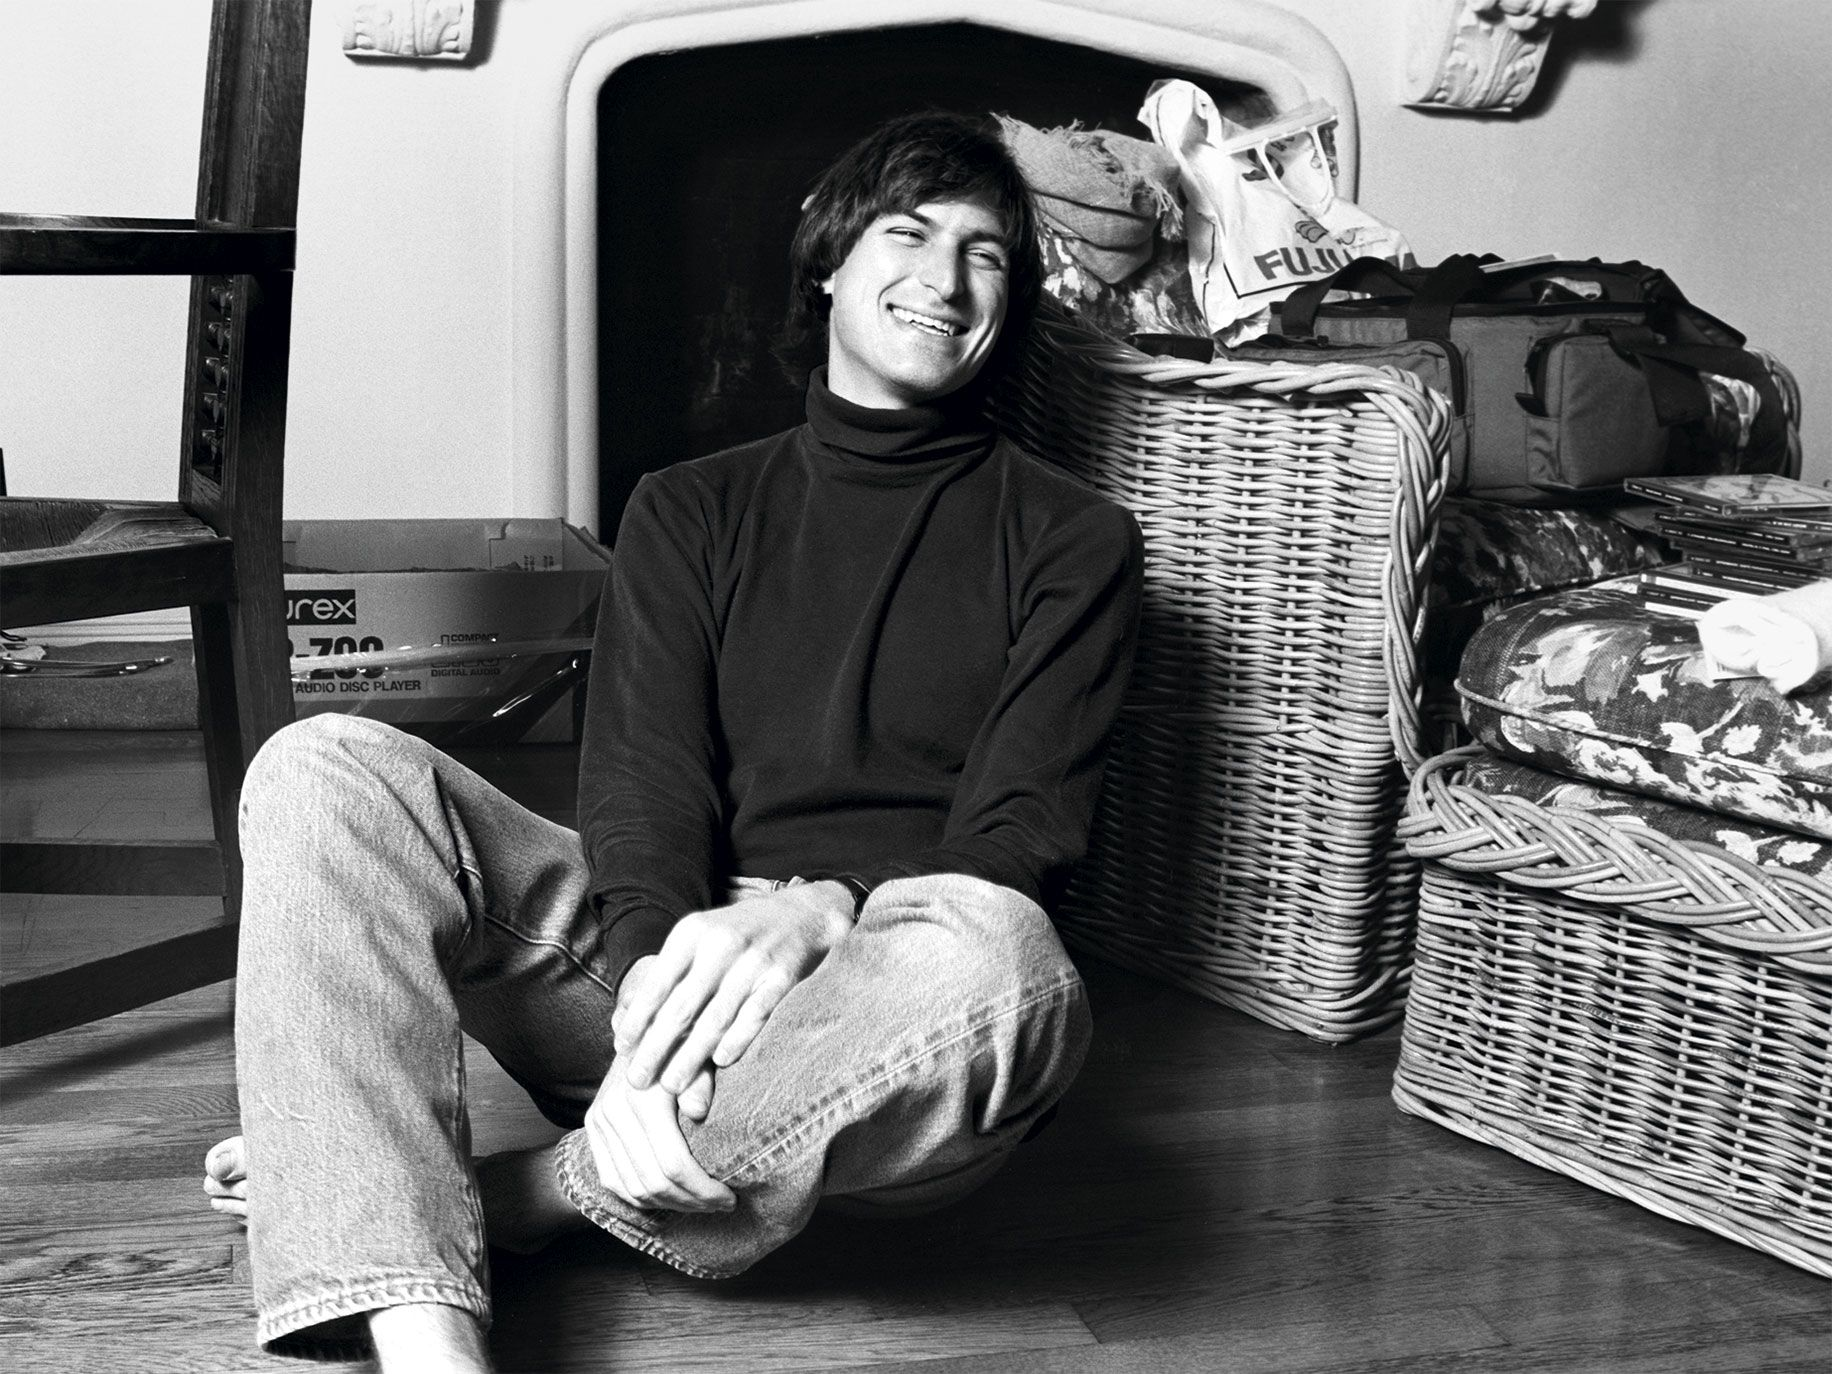 Steve Jobs, who as a young man was known to pad around barefoot in his sparsely furnished home (and sometimes at work), believed that his greatest invention wasn't a device like the iPhone, but Apple, the company that produces it.